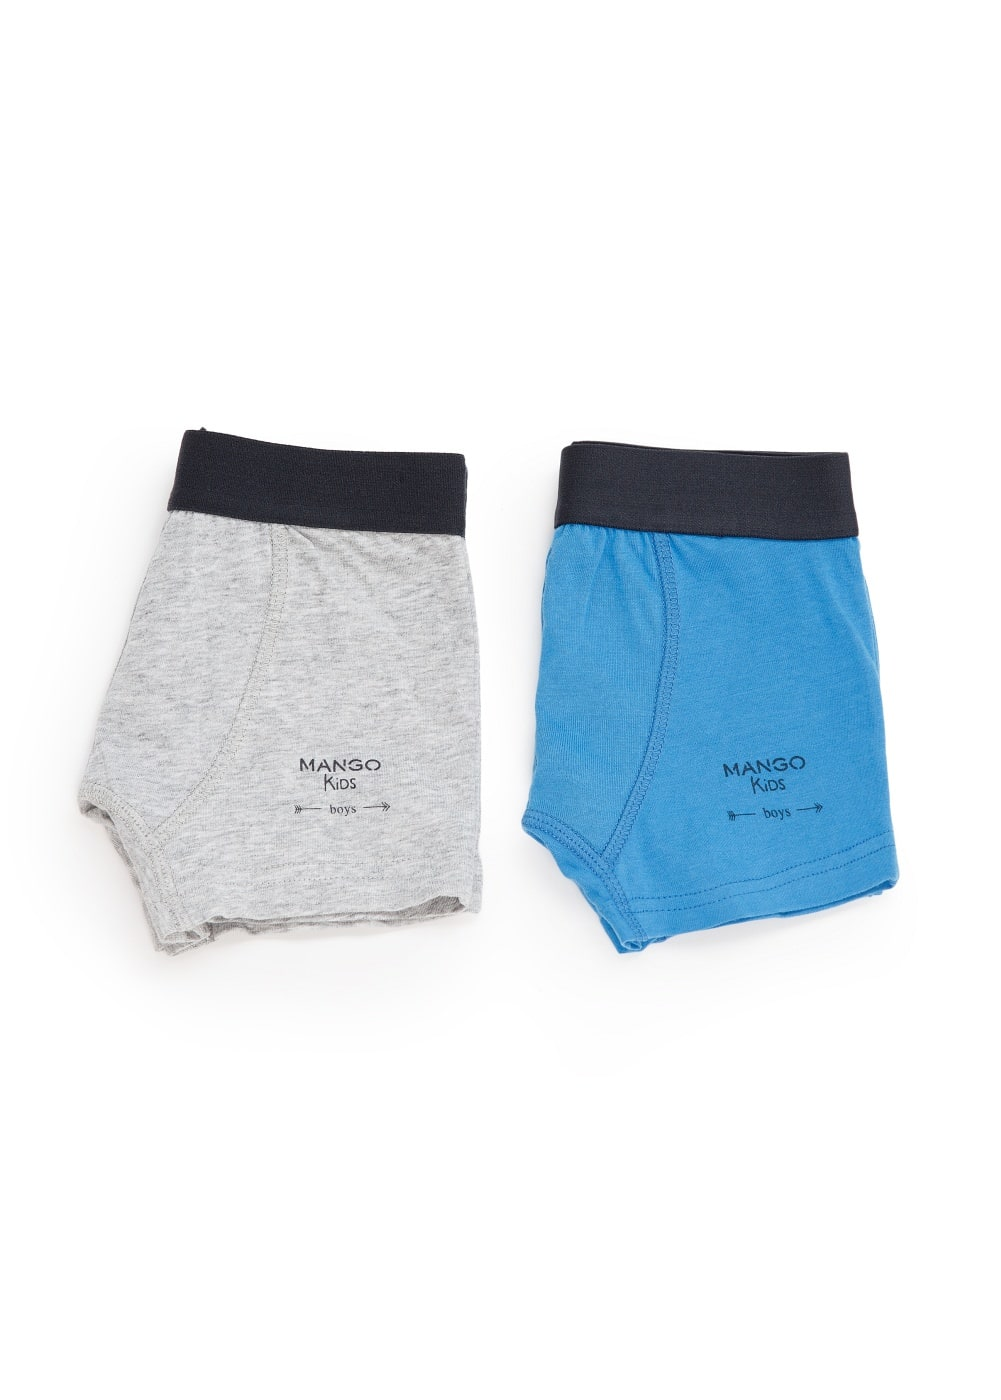 2 pack cotton boxers